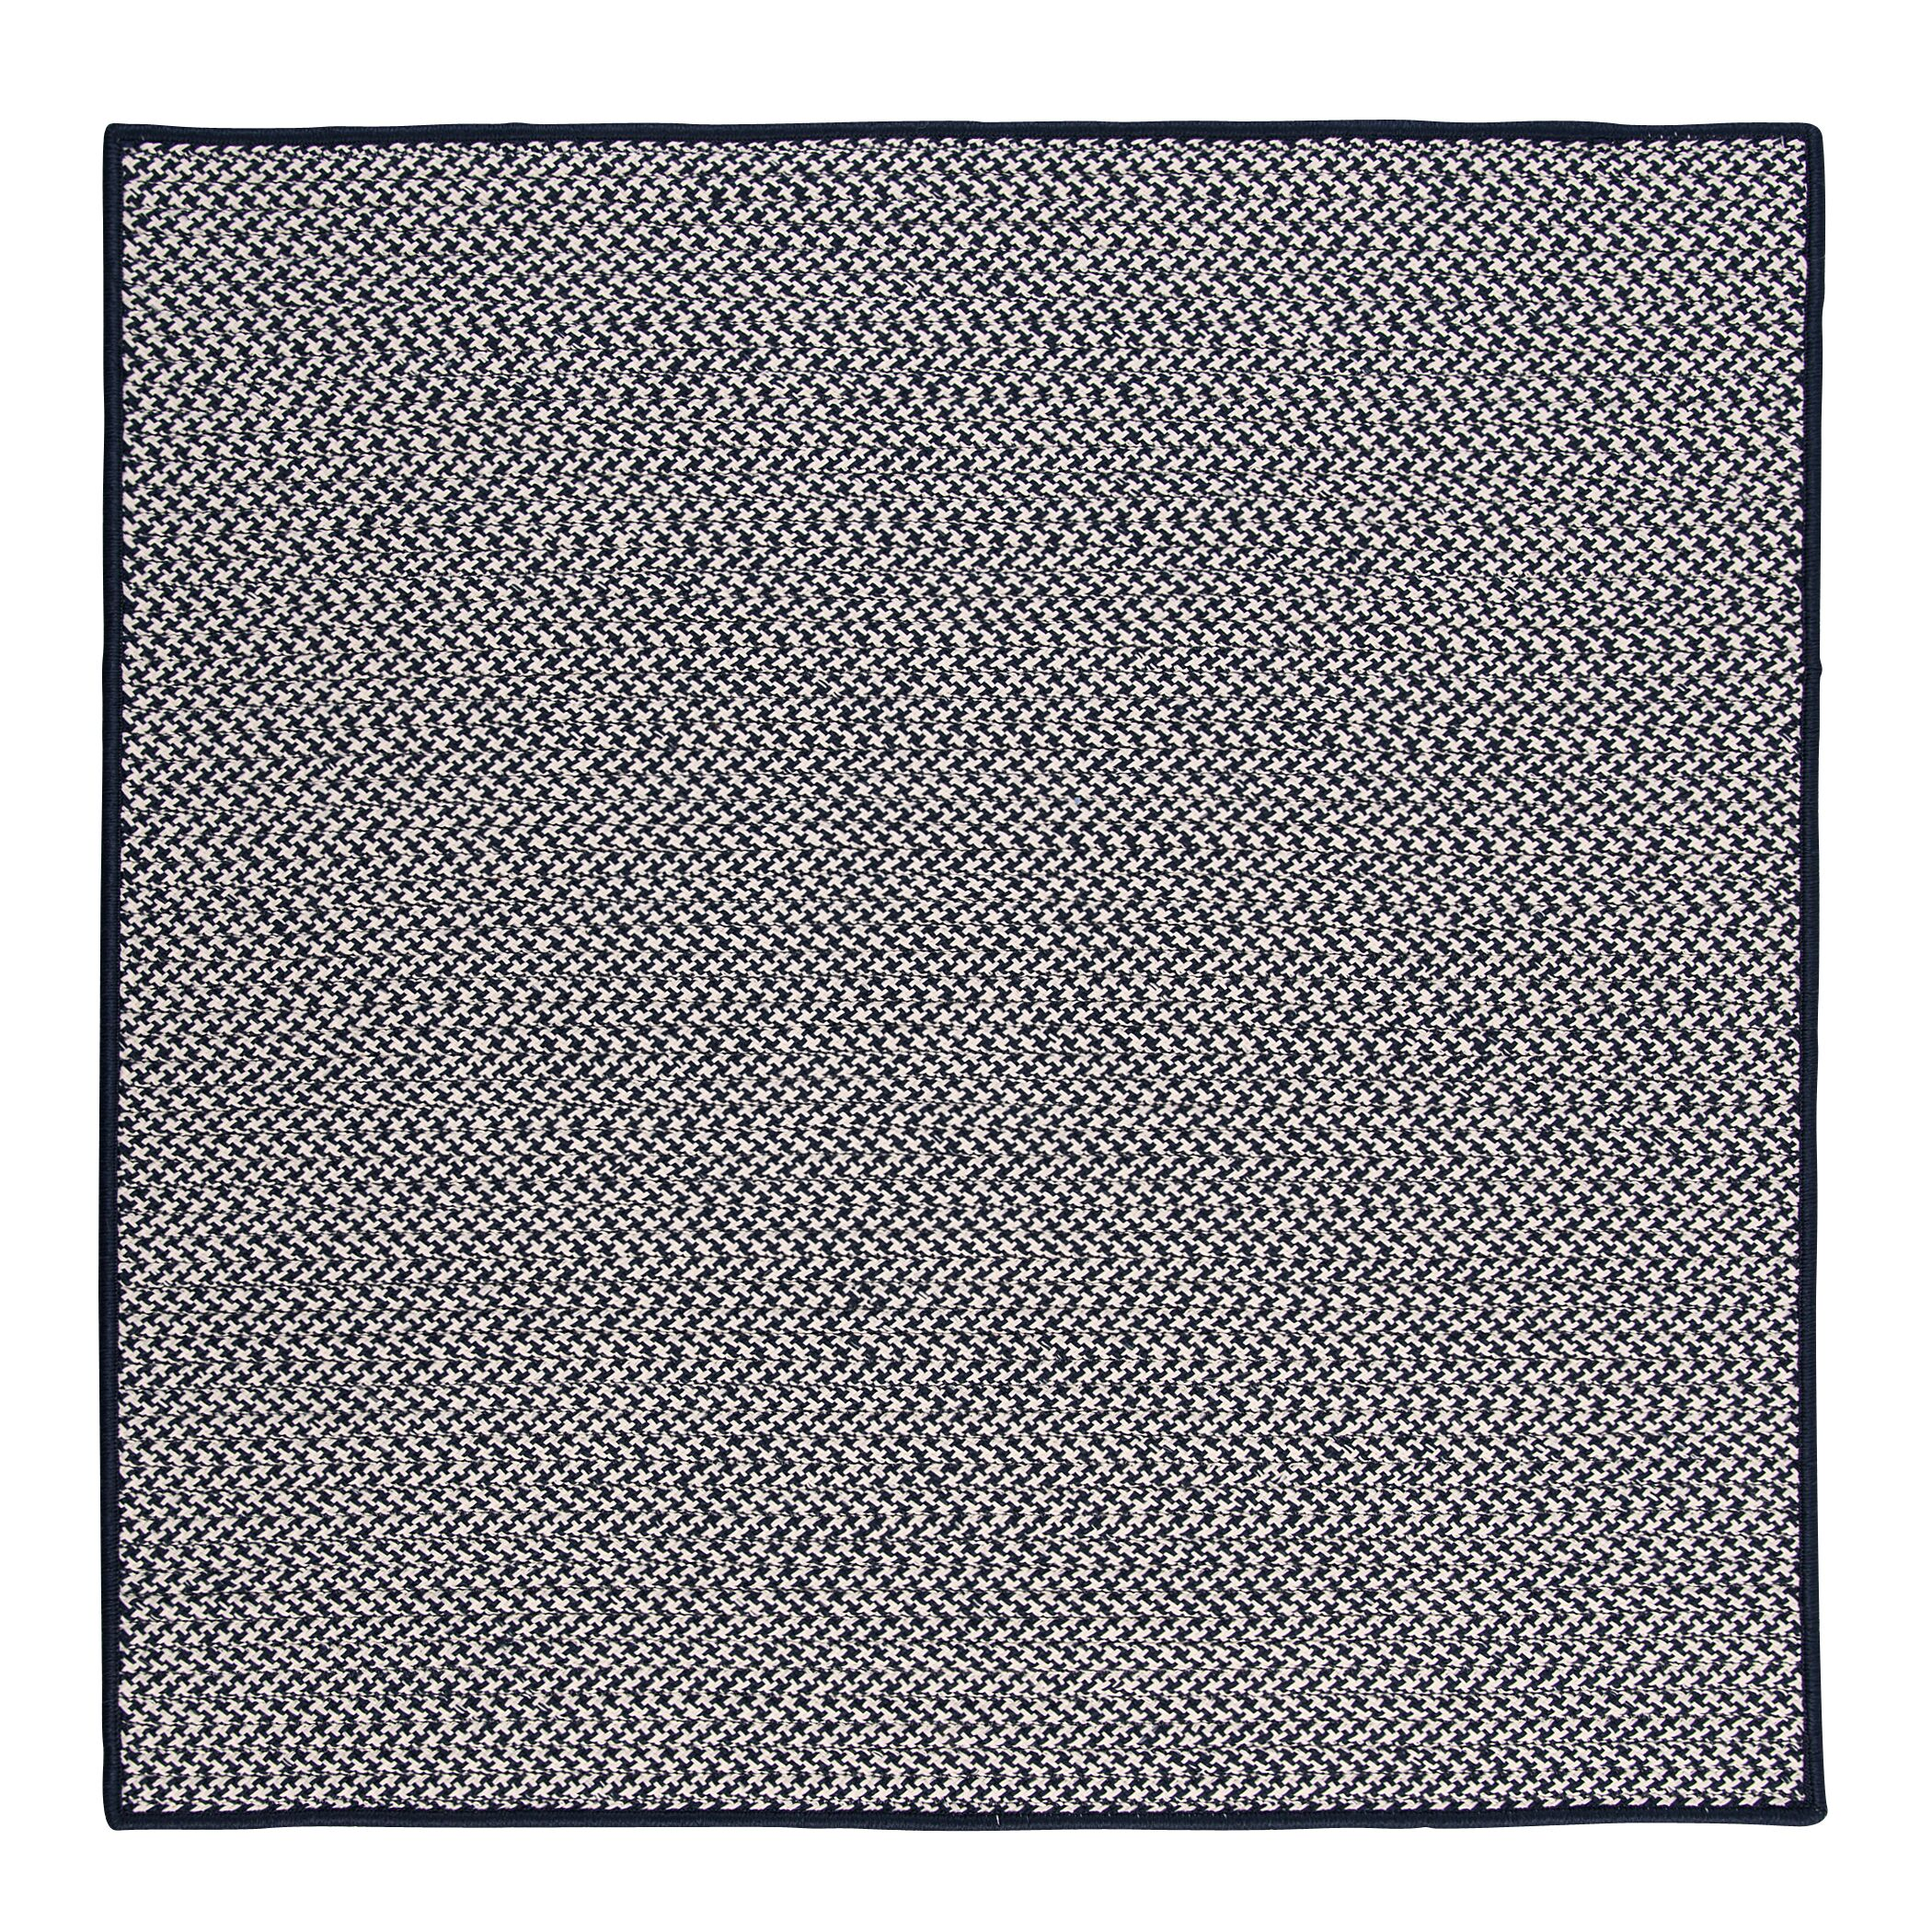 Outdoor Houndstooth Tweed Navy Rug Rug Size: Square 10'